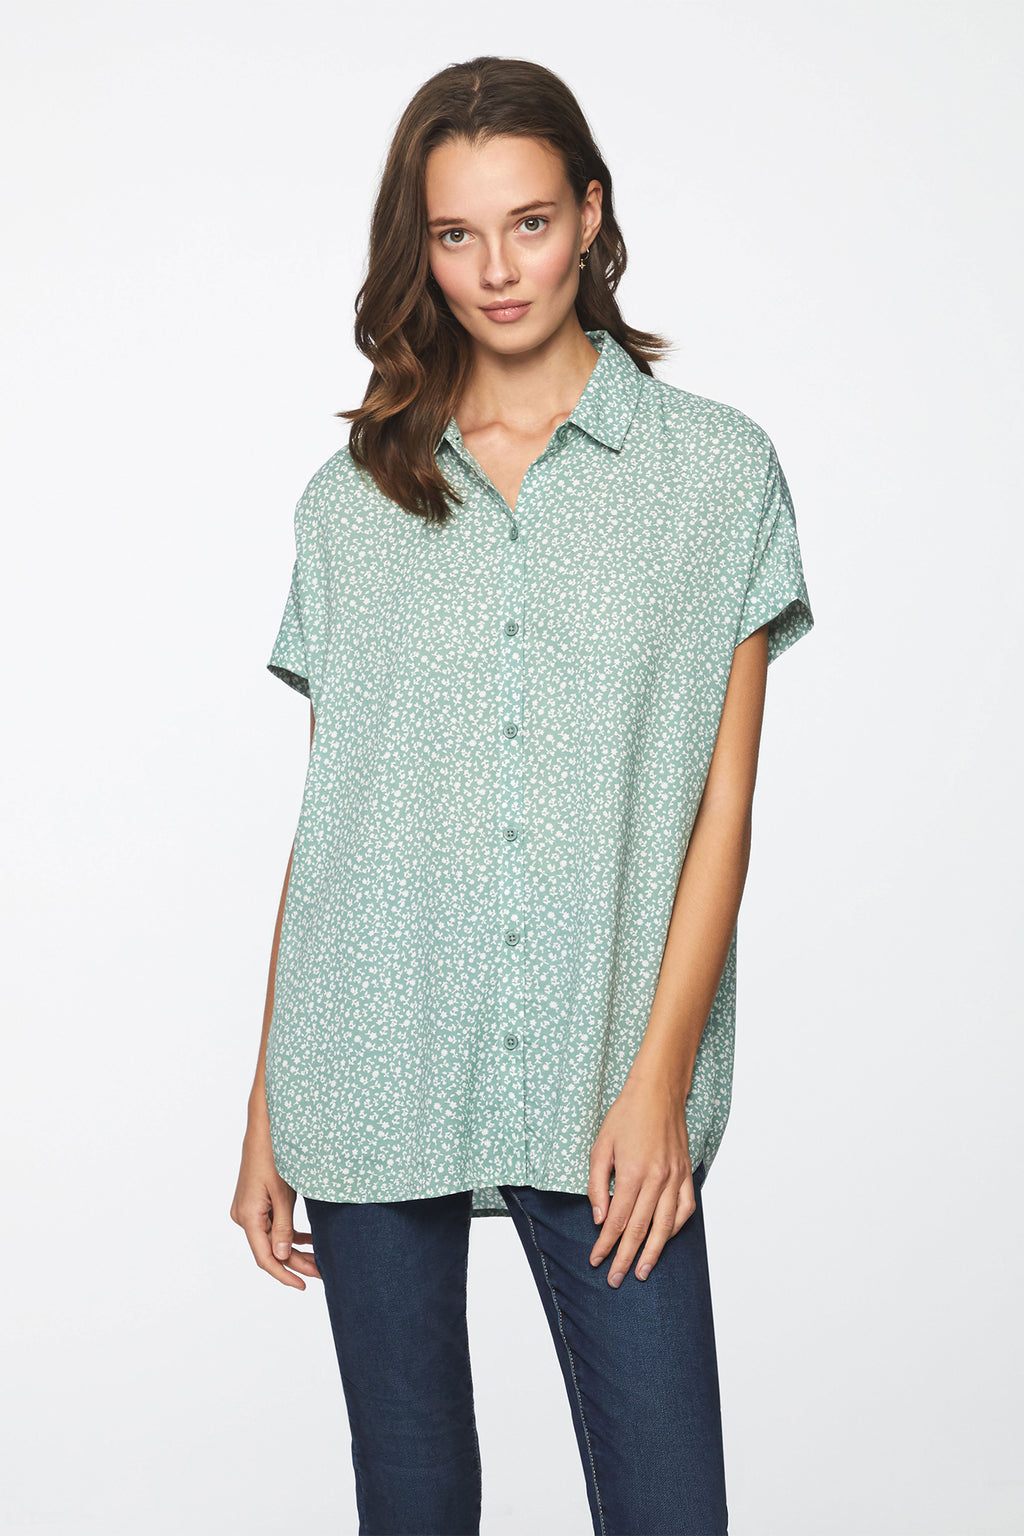 SPENCER SHIRT - MINT DAHLIA